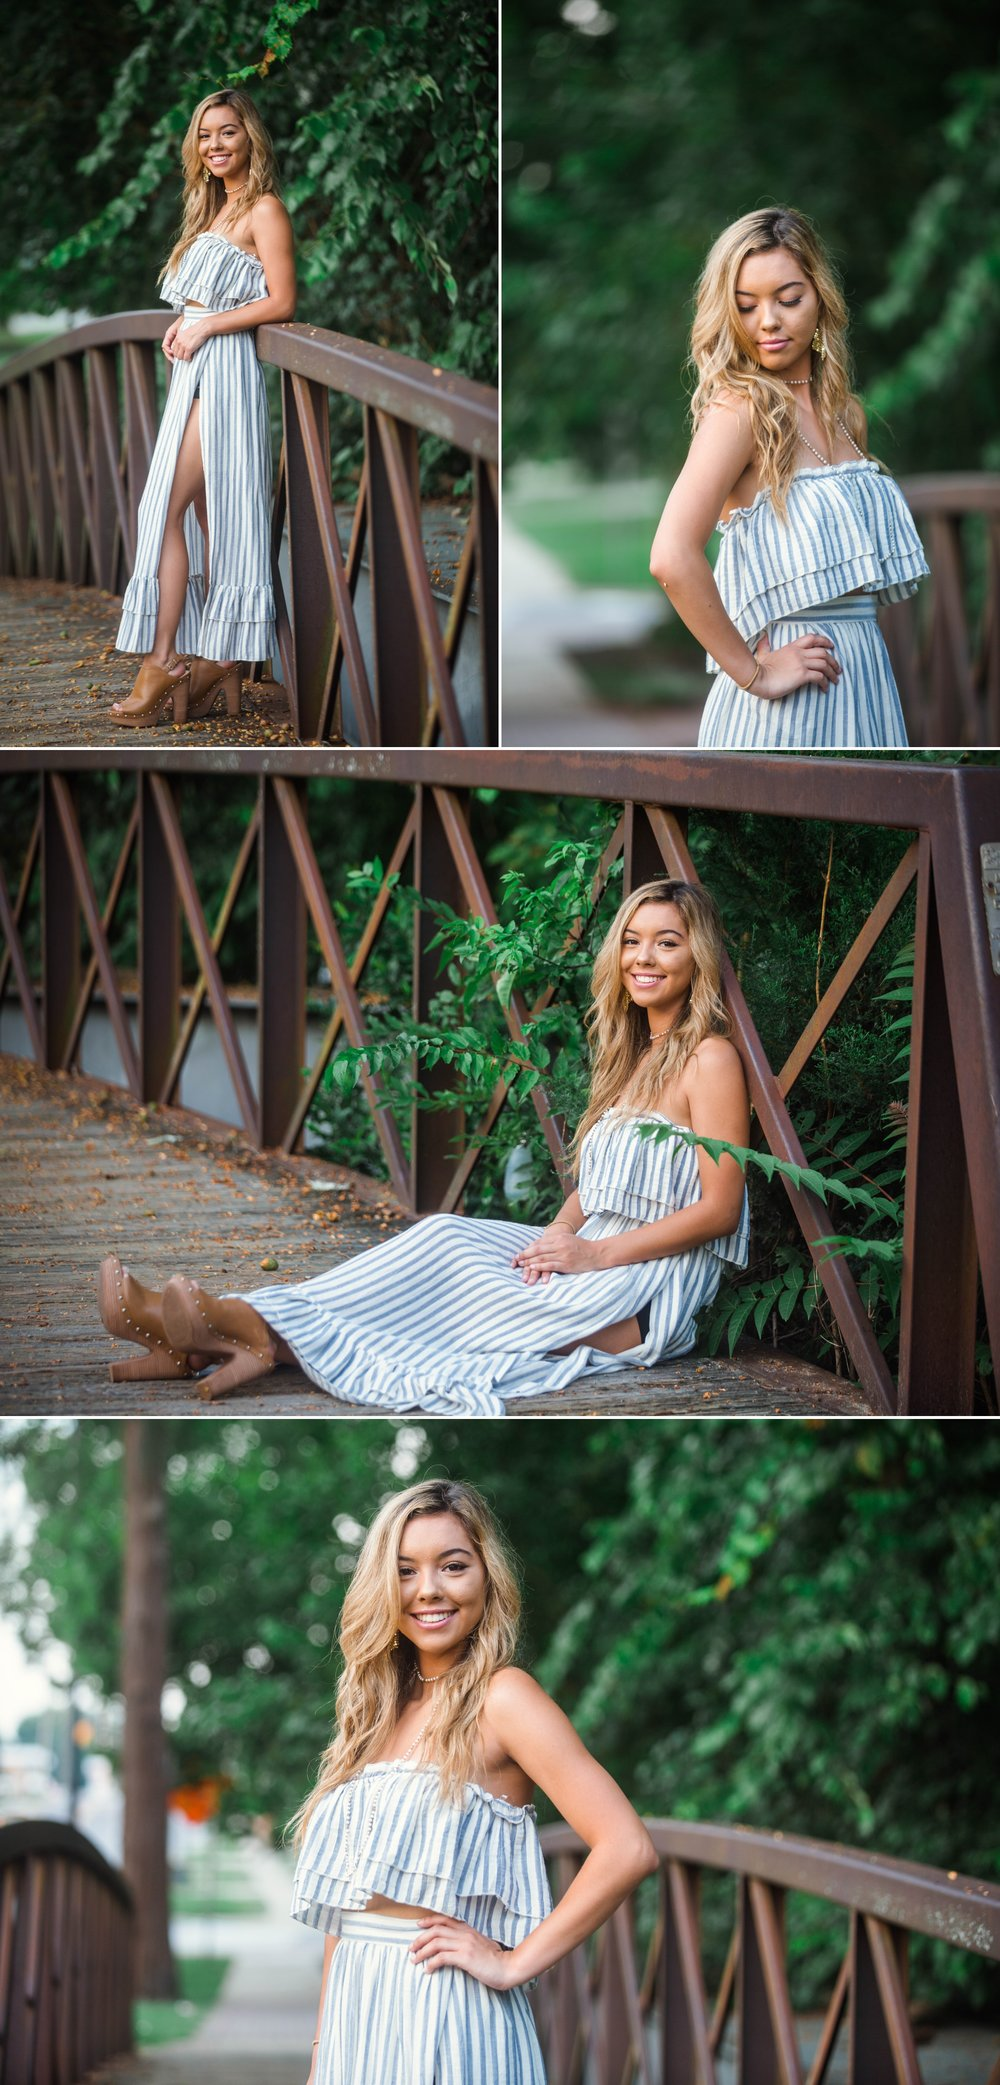 Kaylee - Downtown Urban Senior Photography Session - Fayetteville North Carolina Photographer